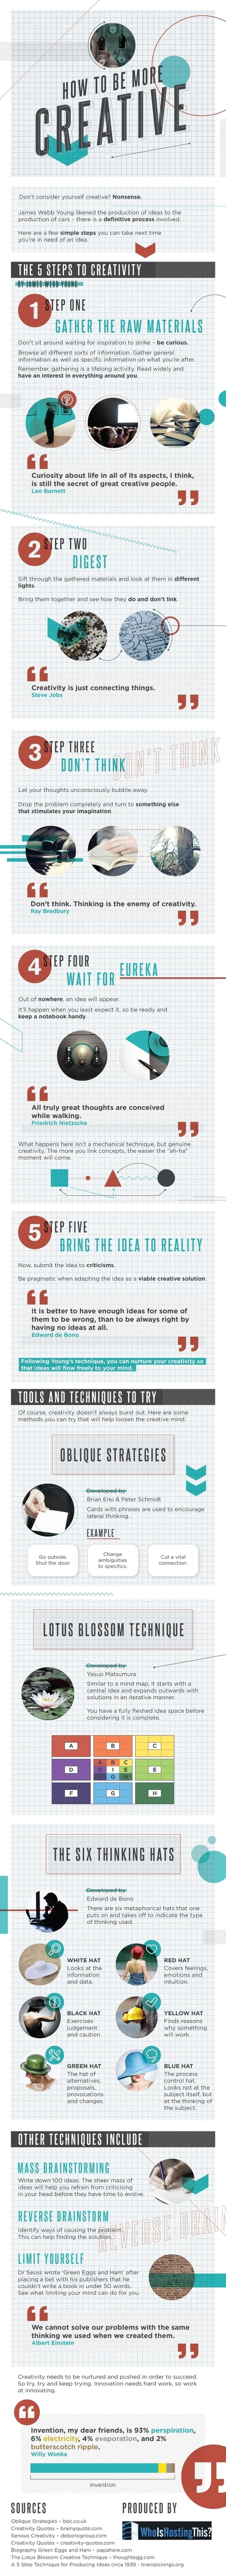 Infographic: How To Be More Creative | Creative Productivity | Scoop.it